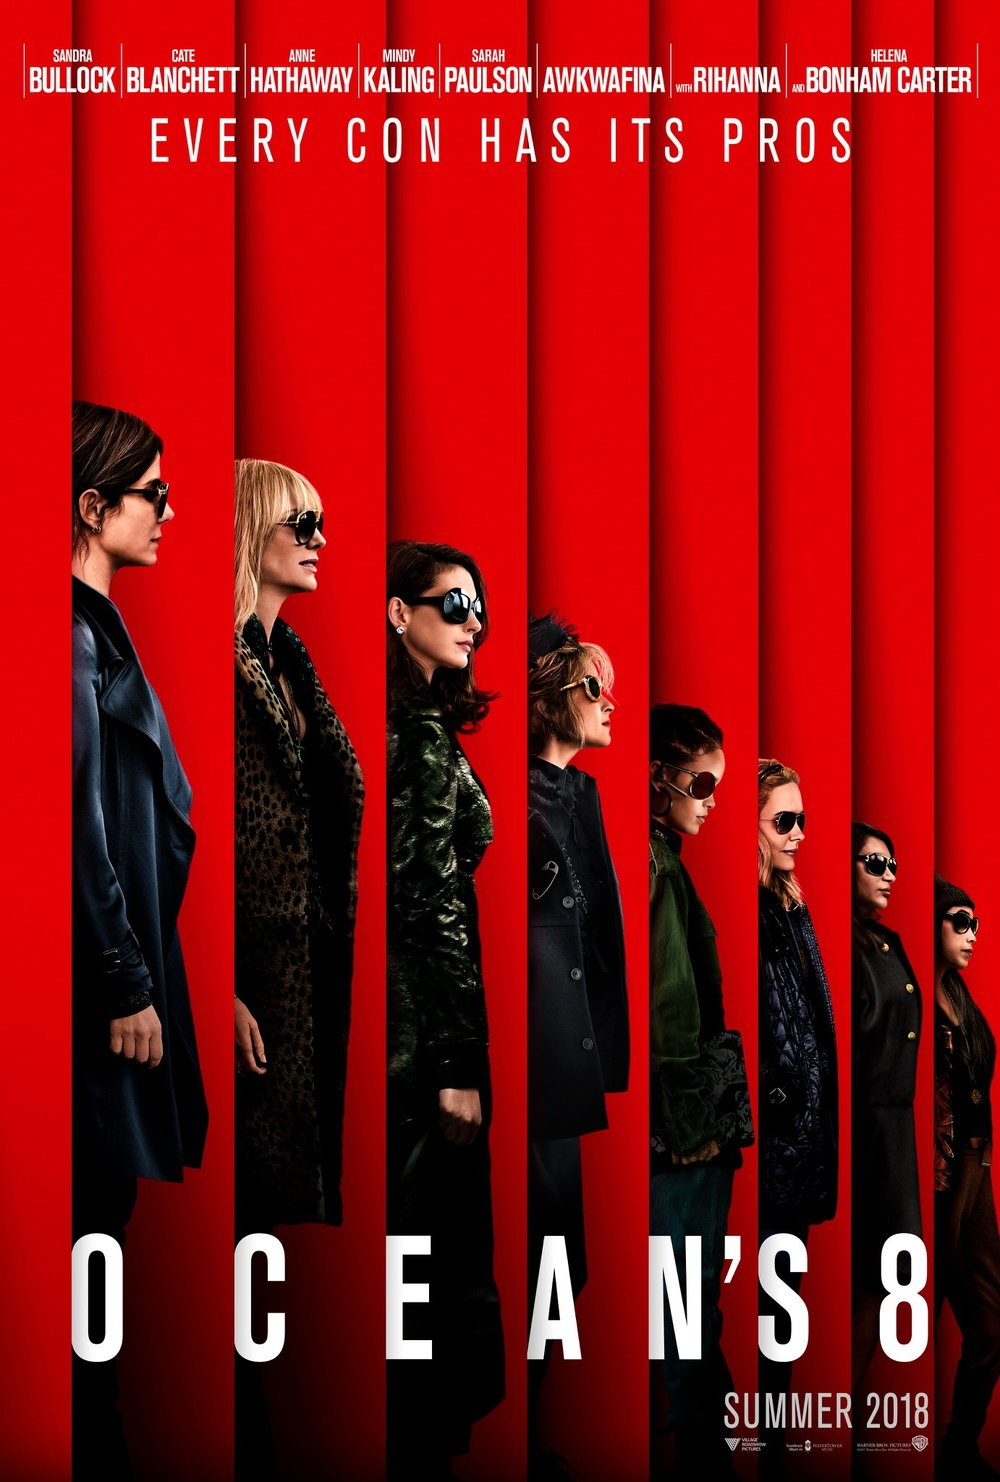 first-cool-poster-for-oceans-8-assembles-the-crew-every-con-has-its-pros4